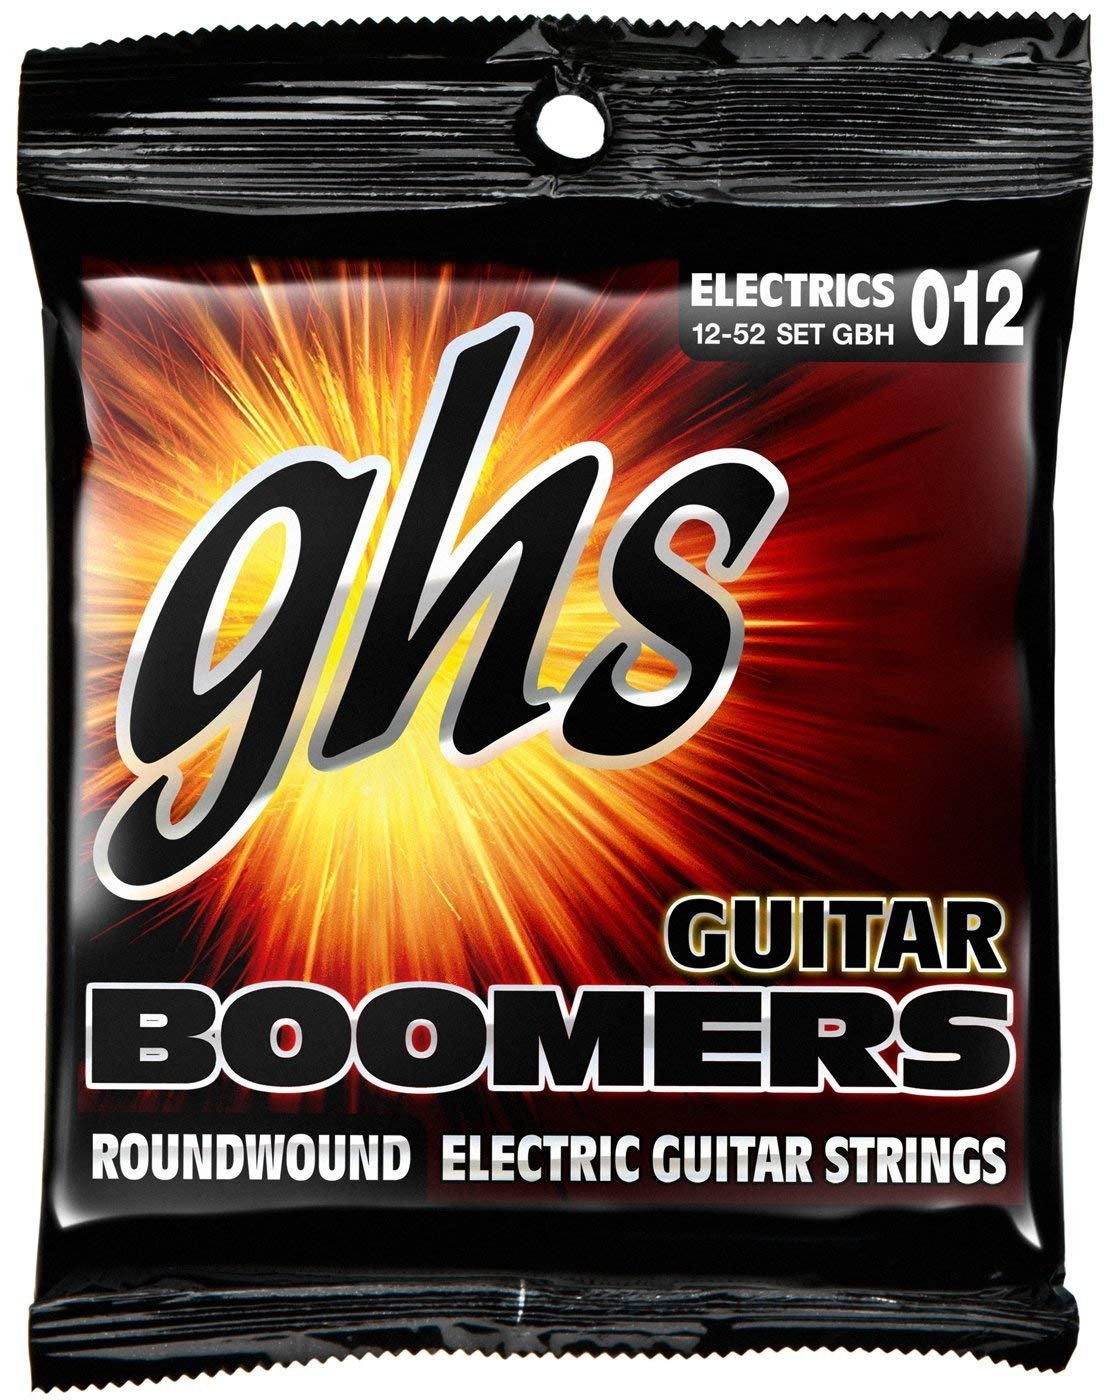 GHS Guitar Boomers Heavy Electric